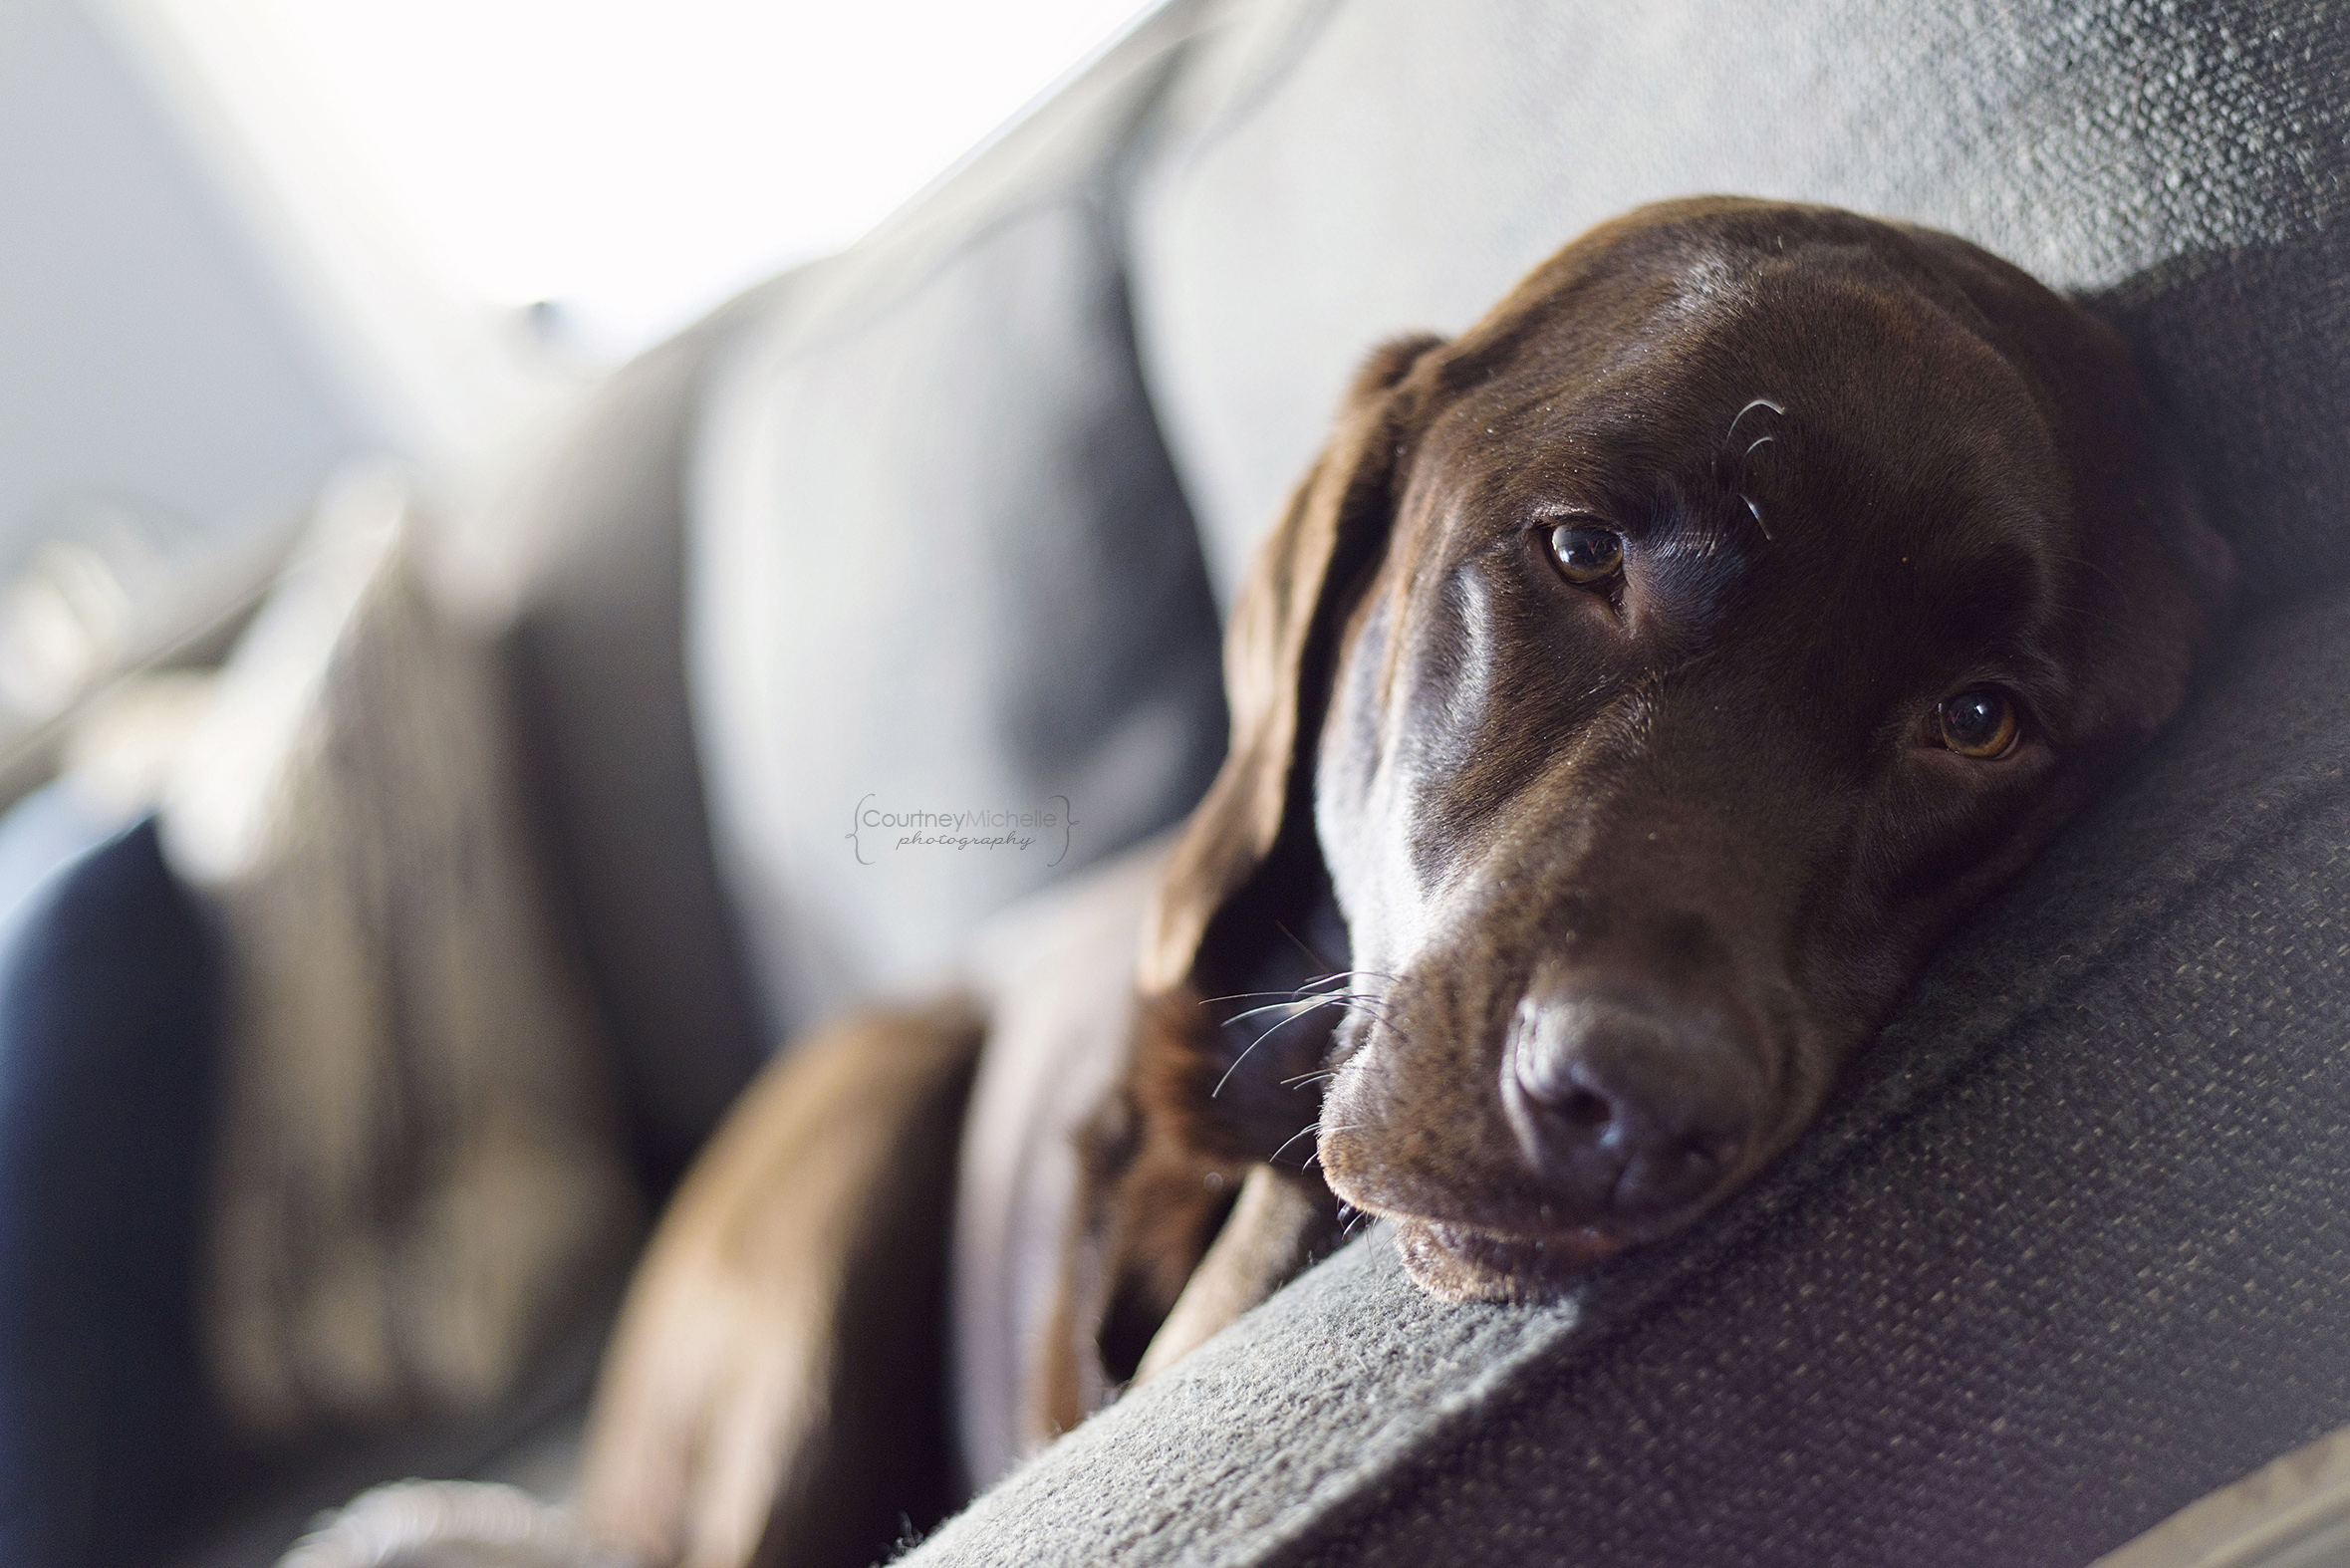 chicago-dog-photographer-chocolate-lab-photography-by-courtney-laper©COPYRIGHTCMP-1687.jpg